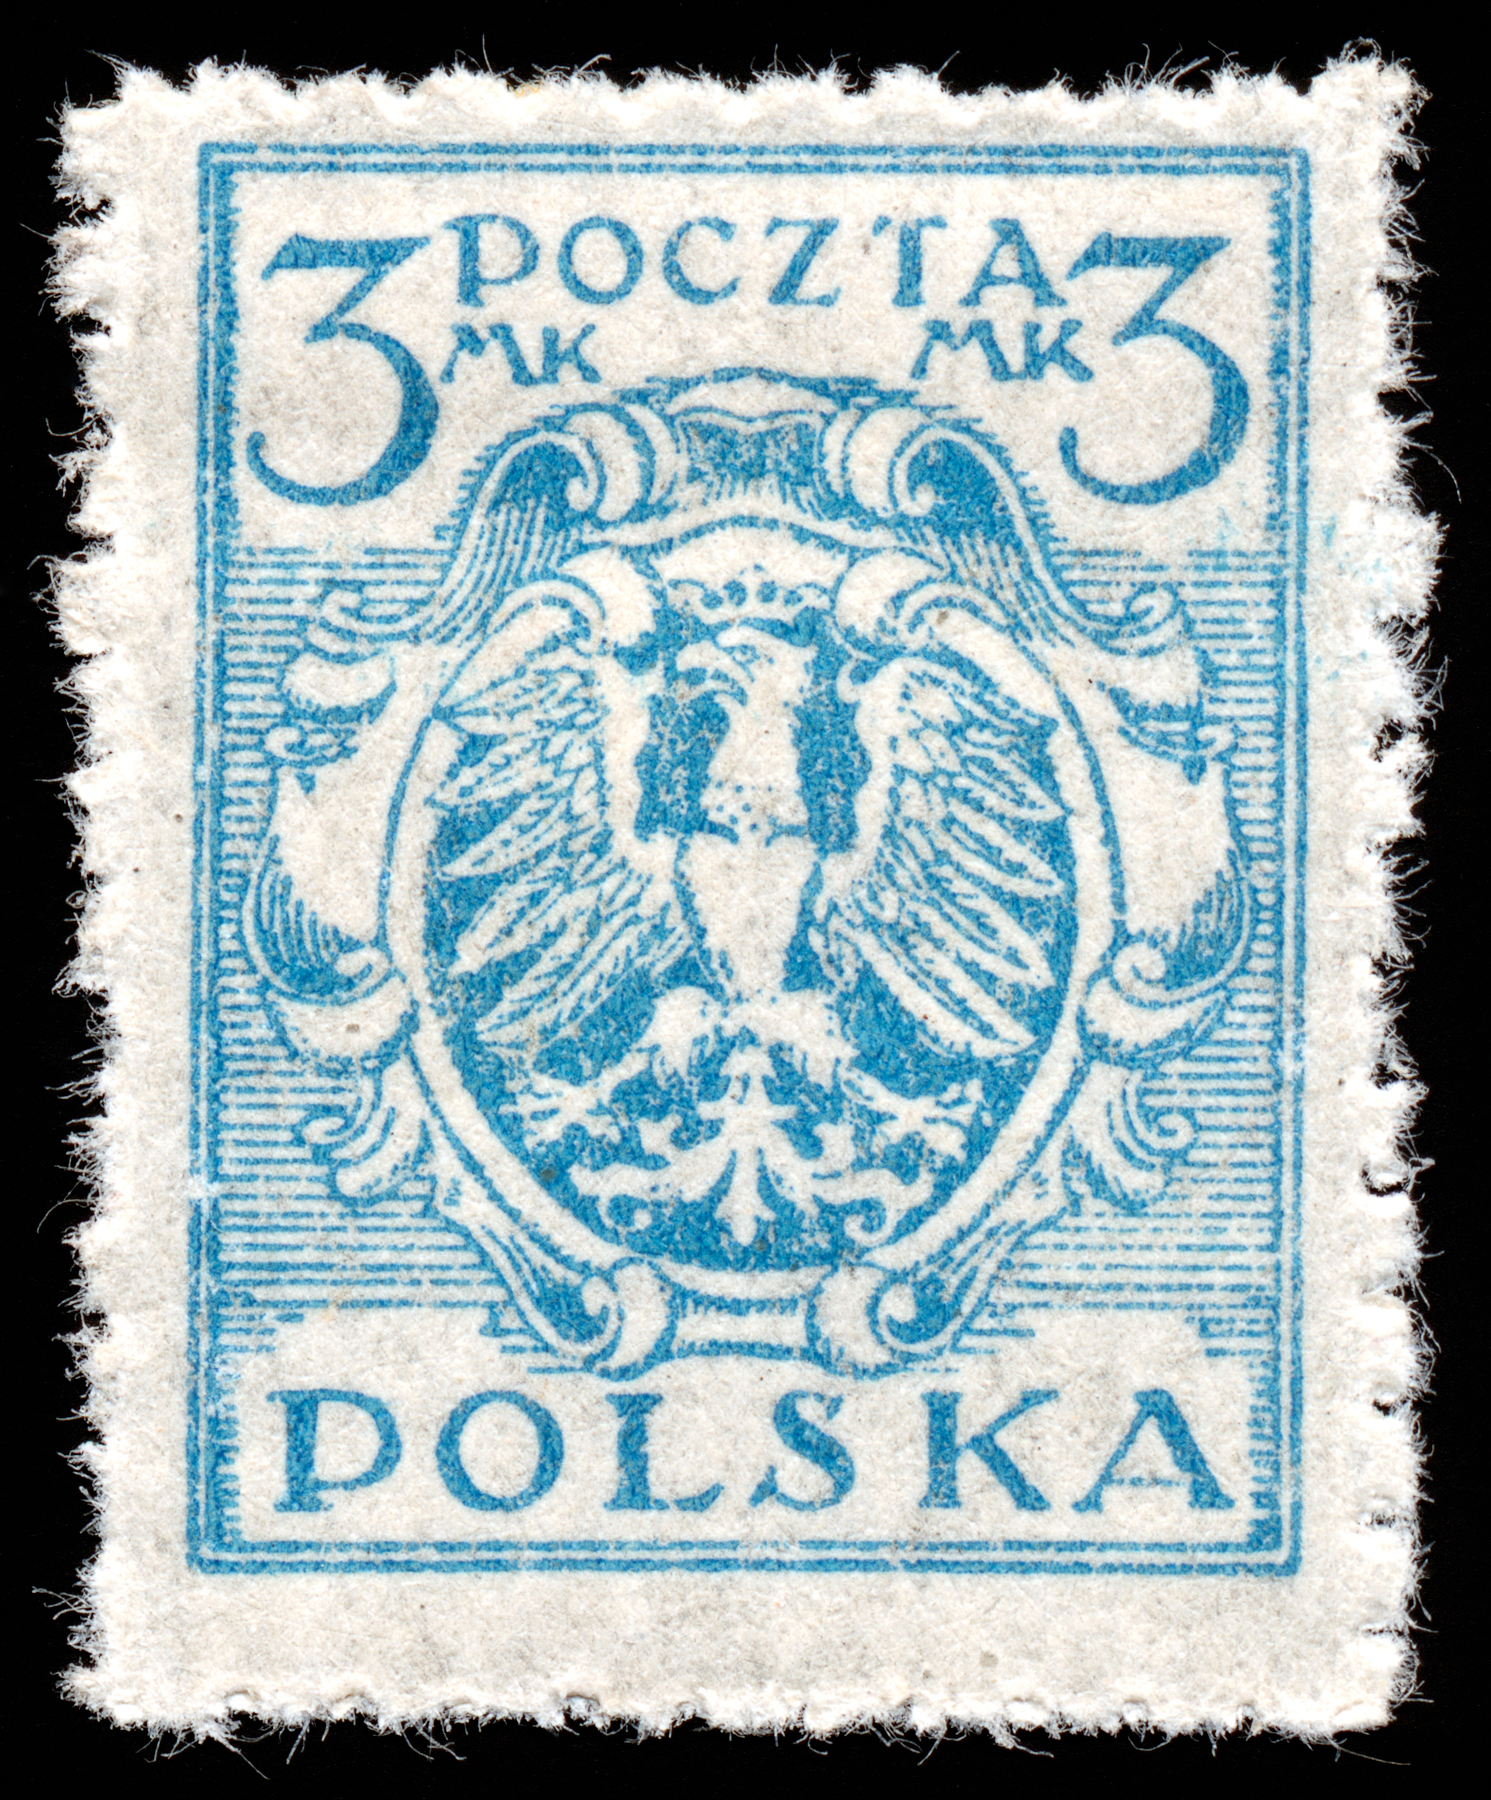 Blue Eagle Crest Stamp, 3, Polska, Rectangle, Postmark, HQ Photo